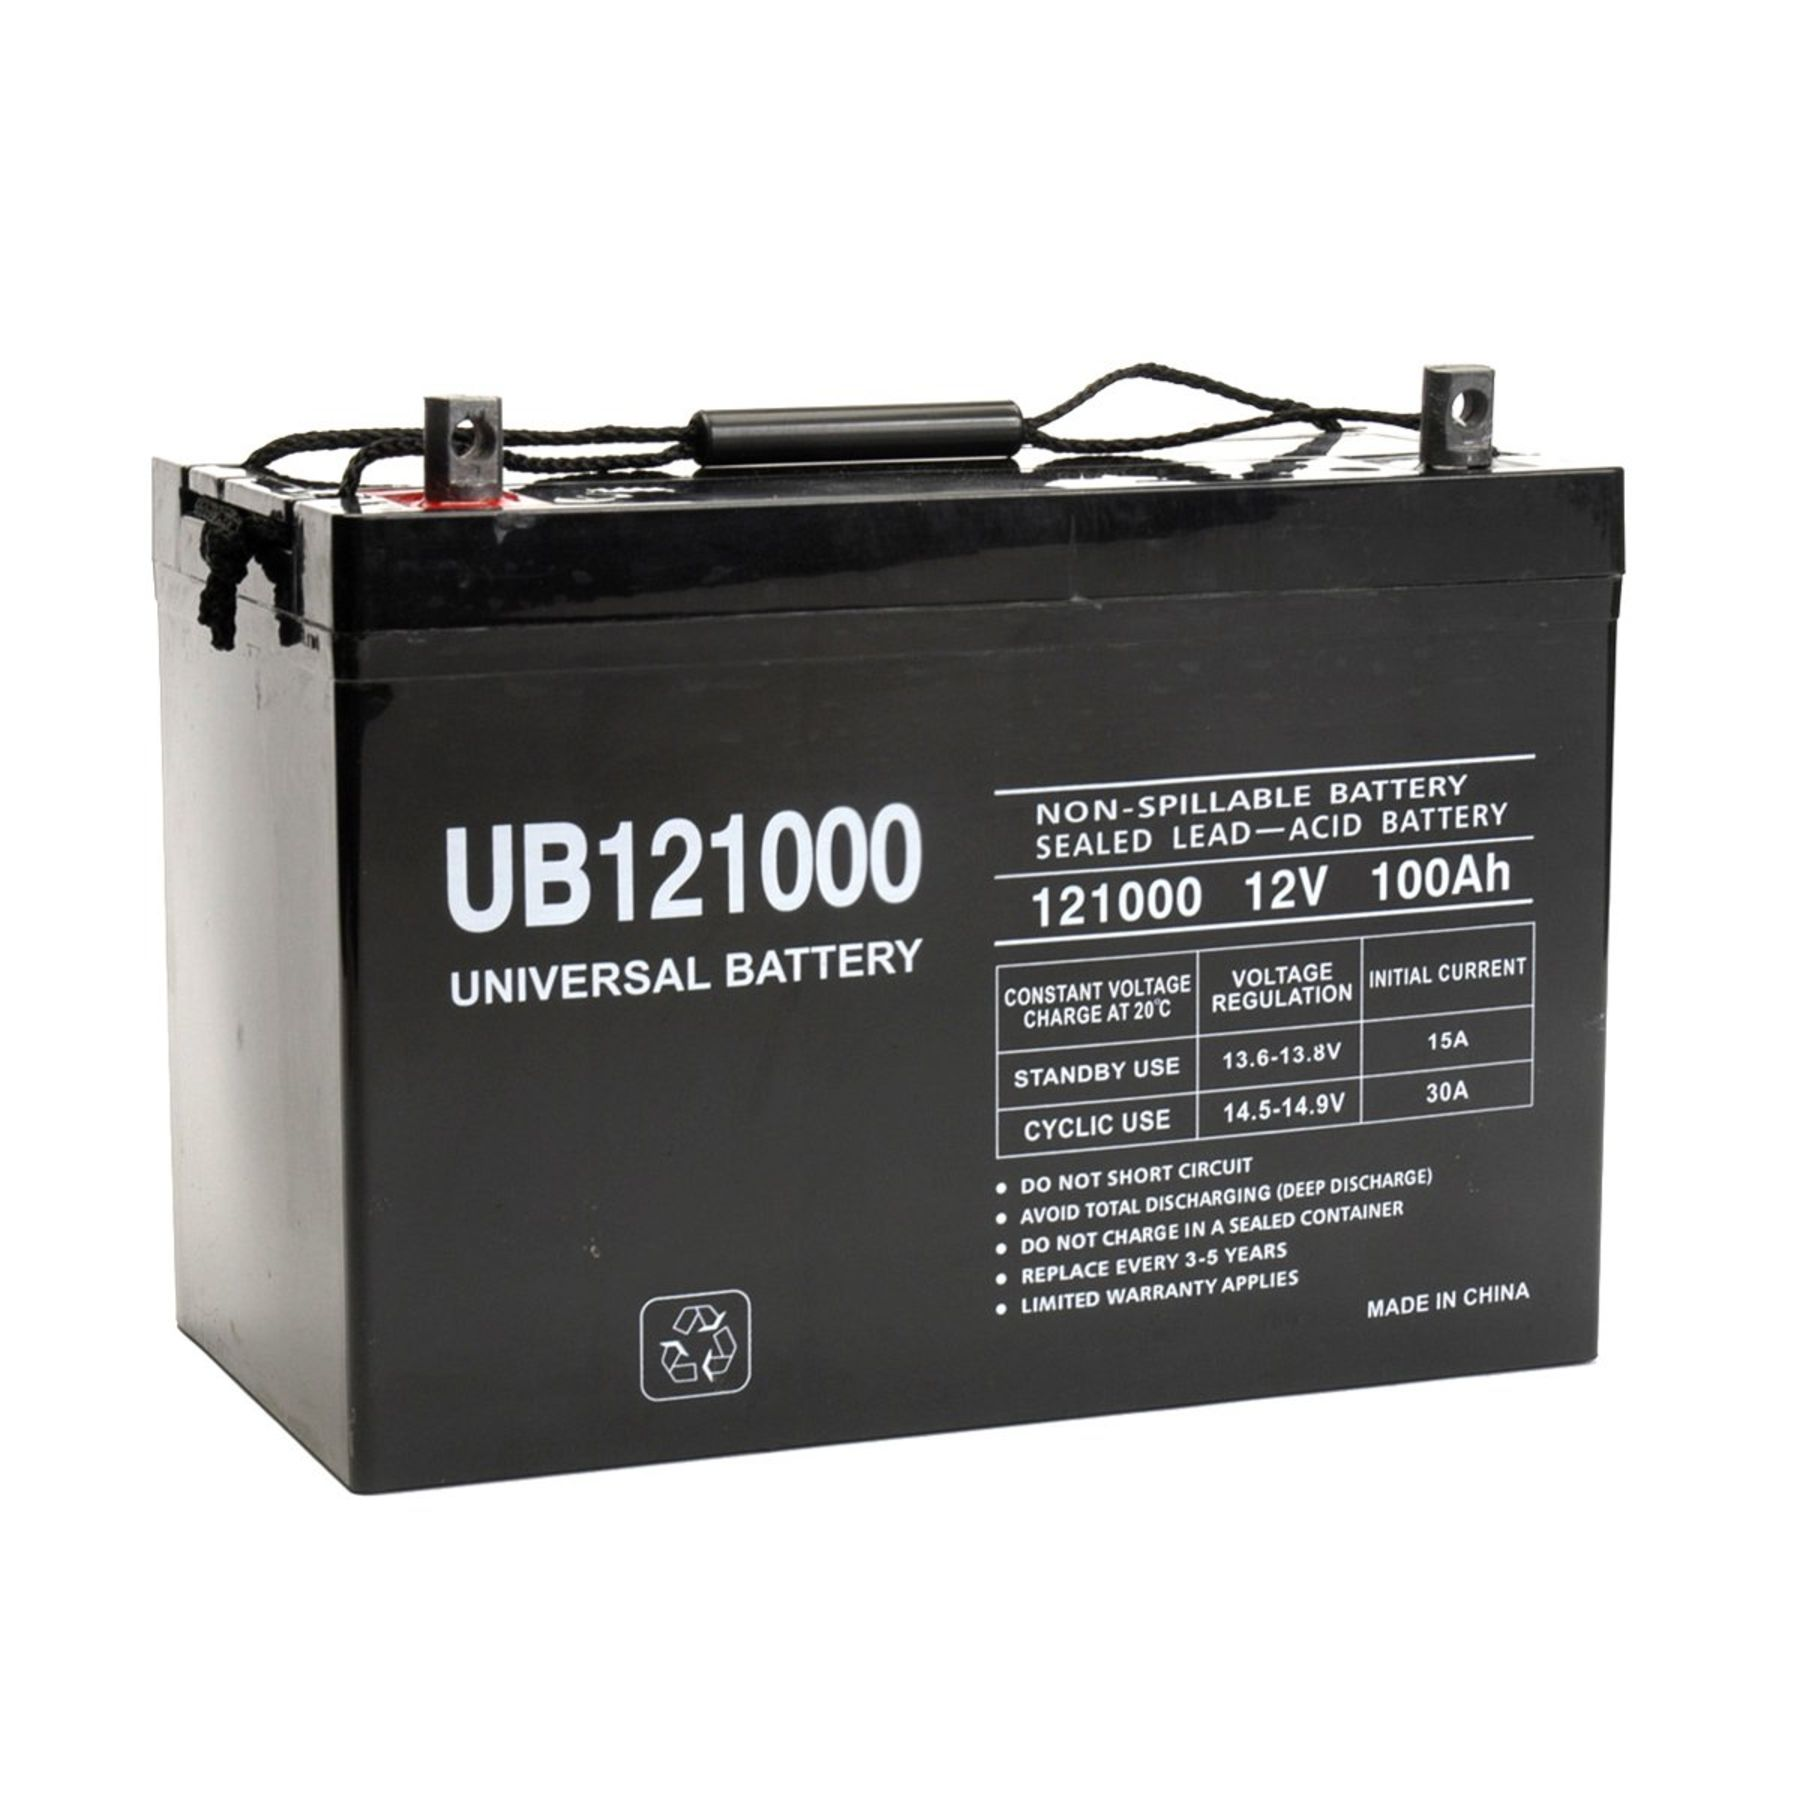 golf cart batteries with Ub121000 45978 on Ultrafire Rechargeable 18650 3 7v 2400mah Battery besides Ub121000 45978 as well 6001c jalite photoluminescent emergency shut down sign 150x150mm besides Motorola Moto G 2015 Moto G 3rd Gen Moto G3 Battery furthermore Produits En Inventaire.